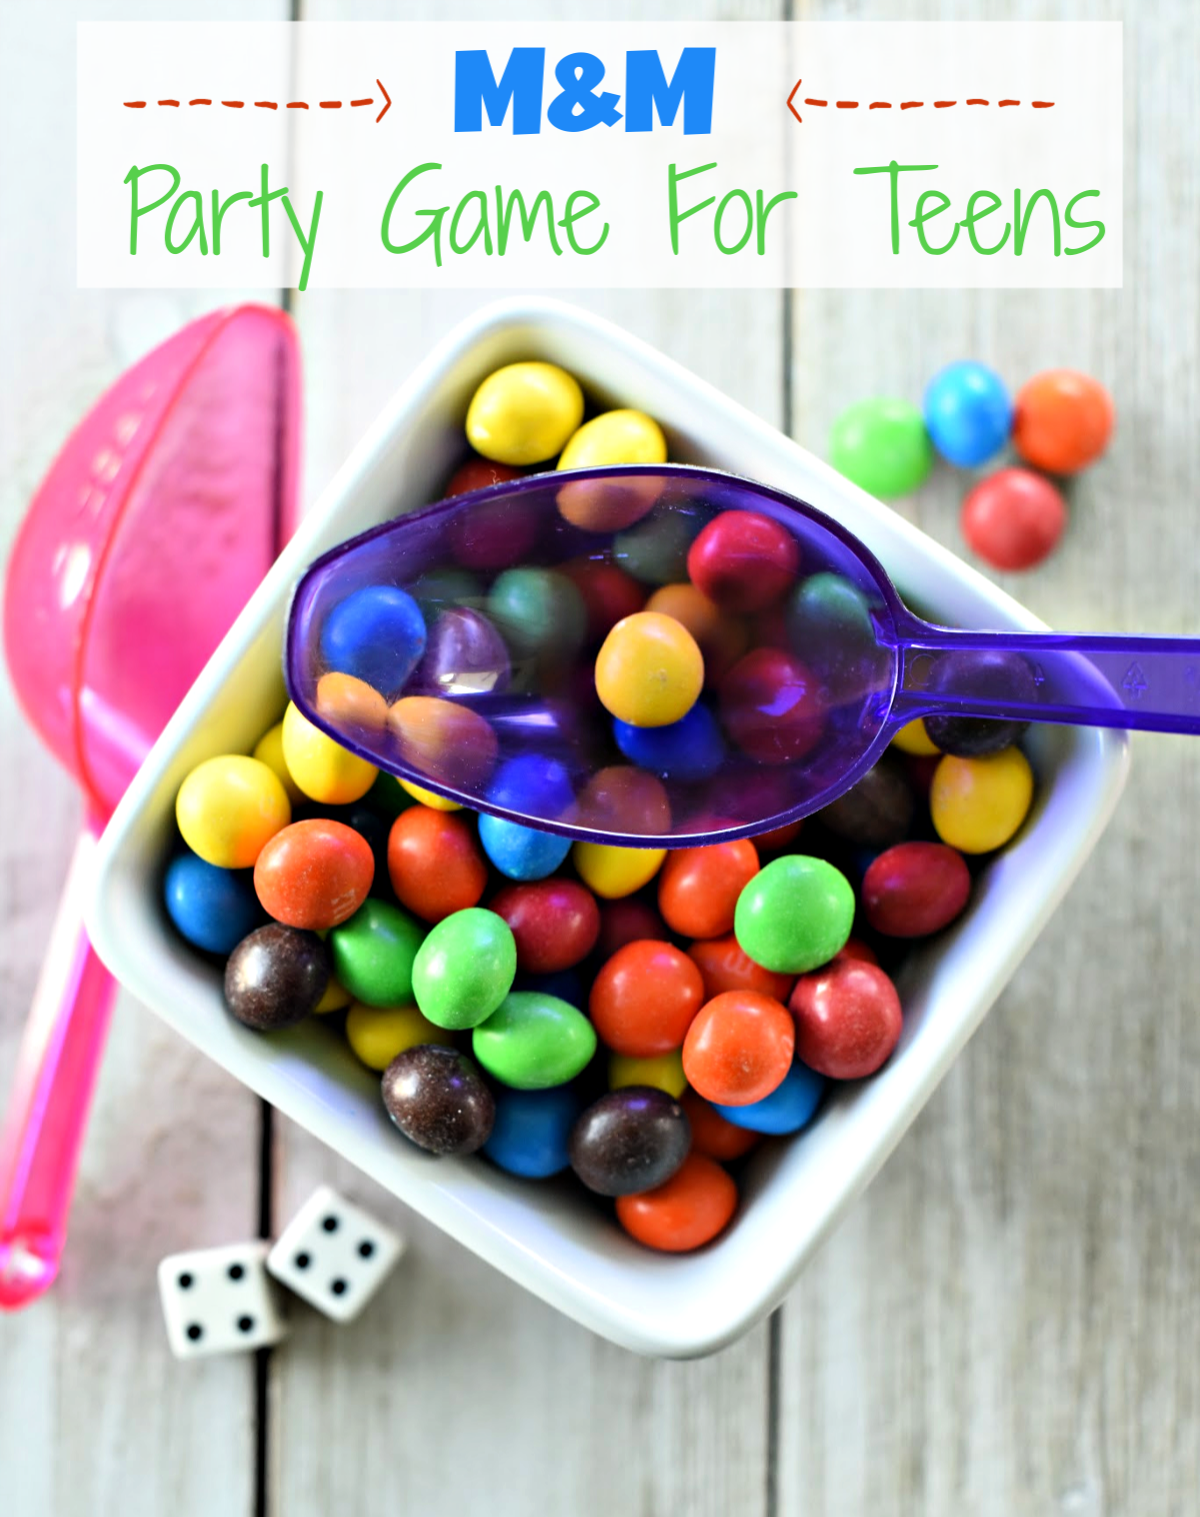 Party Game for Teens